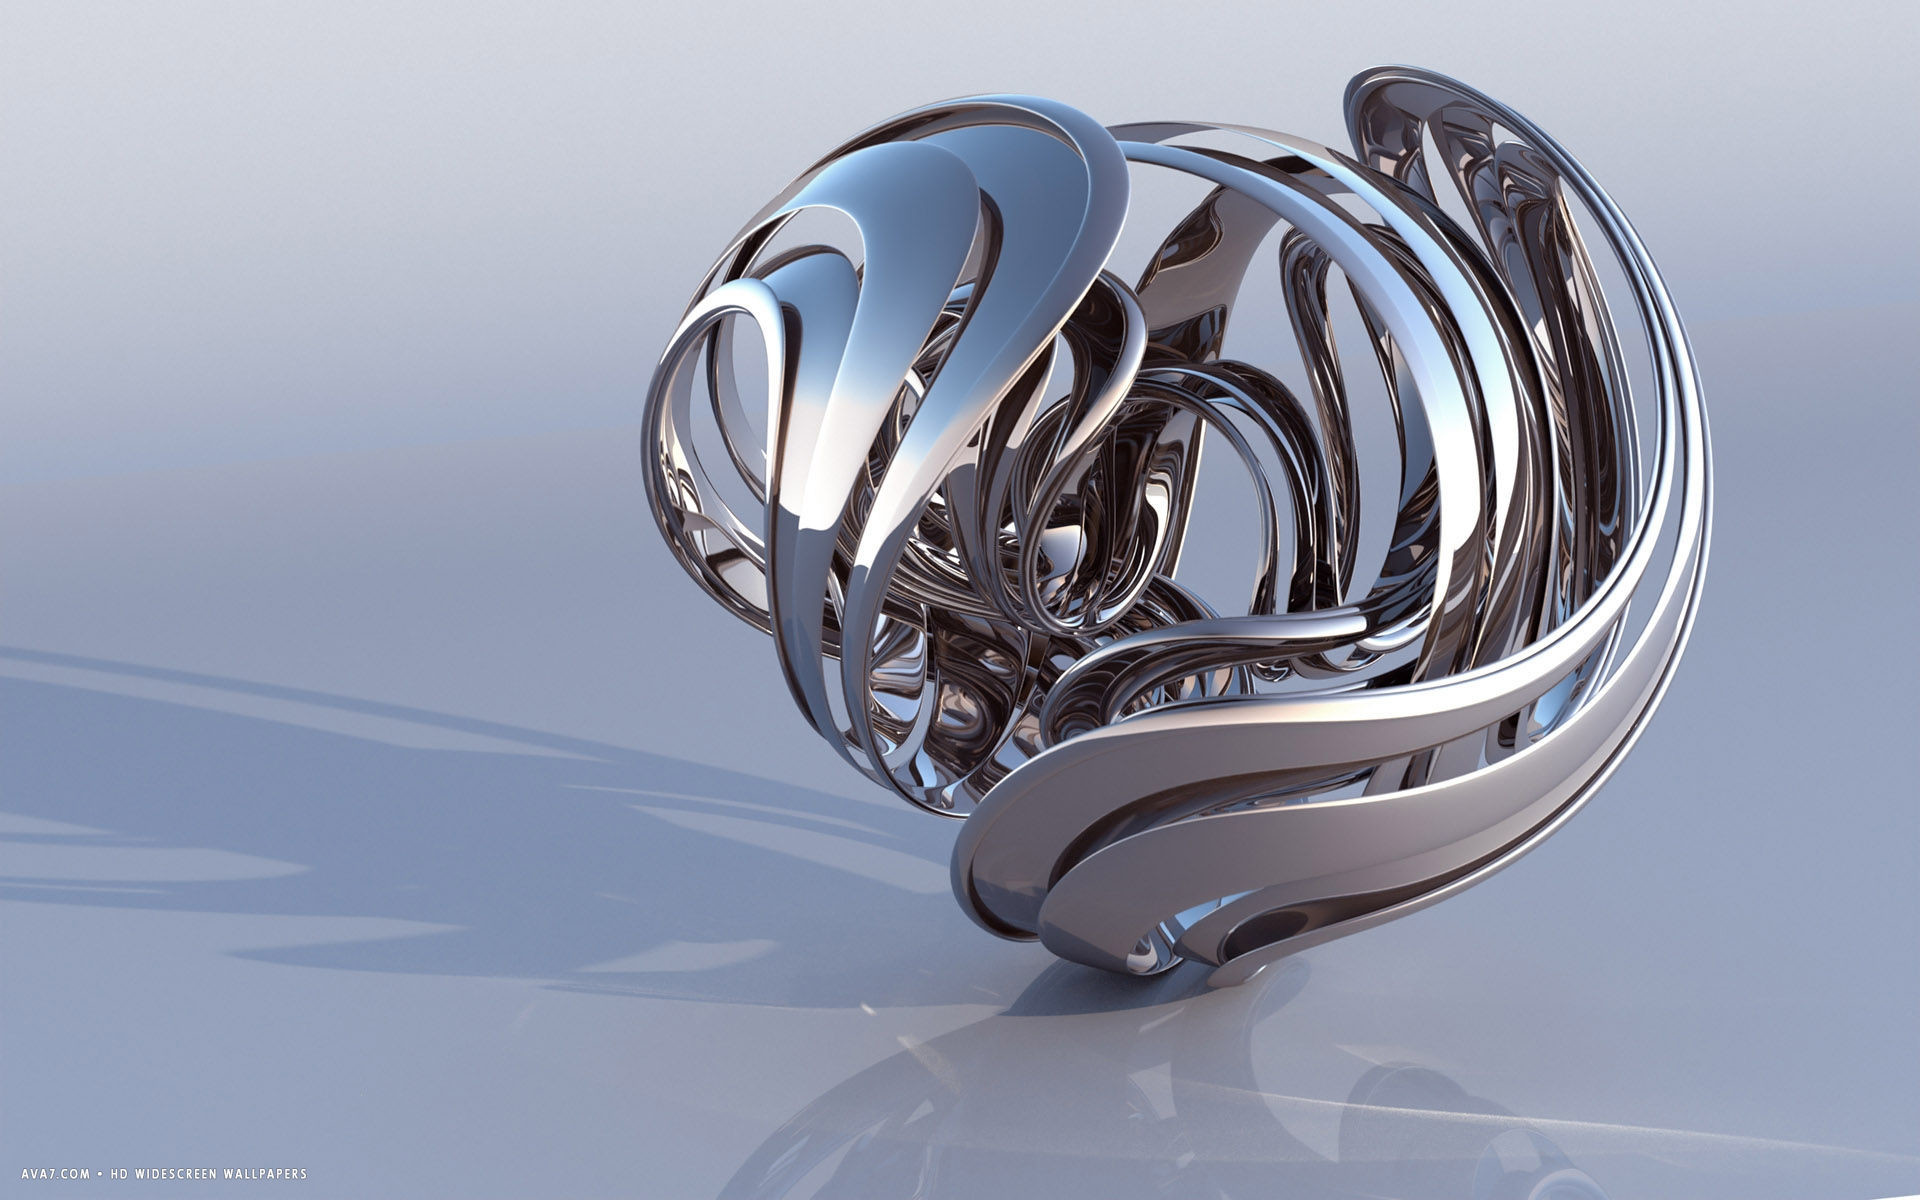 Res: 1920x1200, 3d abstract metal figure reflective shape hd widescreen wallpaper